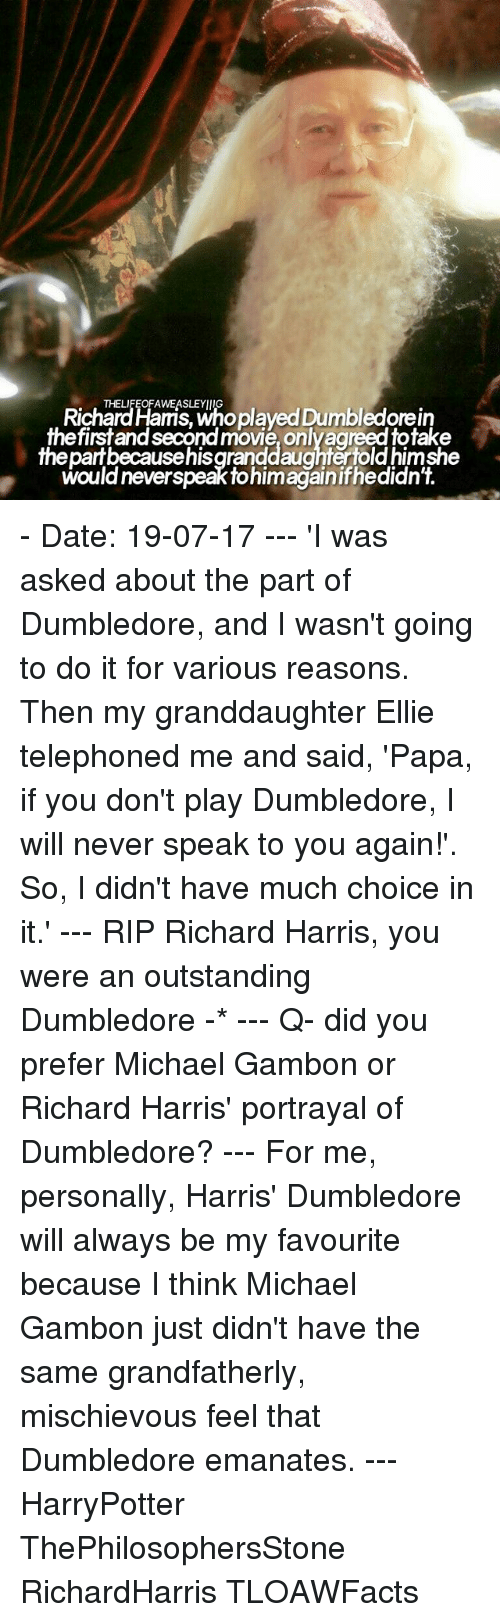 richard harris: Richardlaris, Wnoplayed Dumbledorein  THELIFEOFAWEASLEYIIIG  firstand second movie, onlyagreed totake  thepartbecausehisgranddaughtertold himshe  would neverspeak tohimagainifhedidn't. - Date: 19-07-17 --- 'I was asked about the part of Dumbledore, and I wasn't going to do it for various reasons. Then my granddaughter Ellie telephoned me and said, 'Papa, if you don't play Dumbledore, I will never speak to you again!'. So, I didn't have much choice in it.' --- RIP Richard Harris, you were an outstanding Dumbledore -* --- Q- did you prefer Michael Gambon or Richard Harris' portrayal of Dumbledore? --- For me, personally, Harris' Dumbledore will always be my favourite because I think Michael Gambon just didn't have the same grandfatherly, mischievous feel that Dumbledore emanates. --- HarryPotter ThePhilosophersStone RichardHarris TLOAWFacts